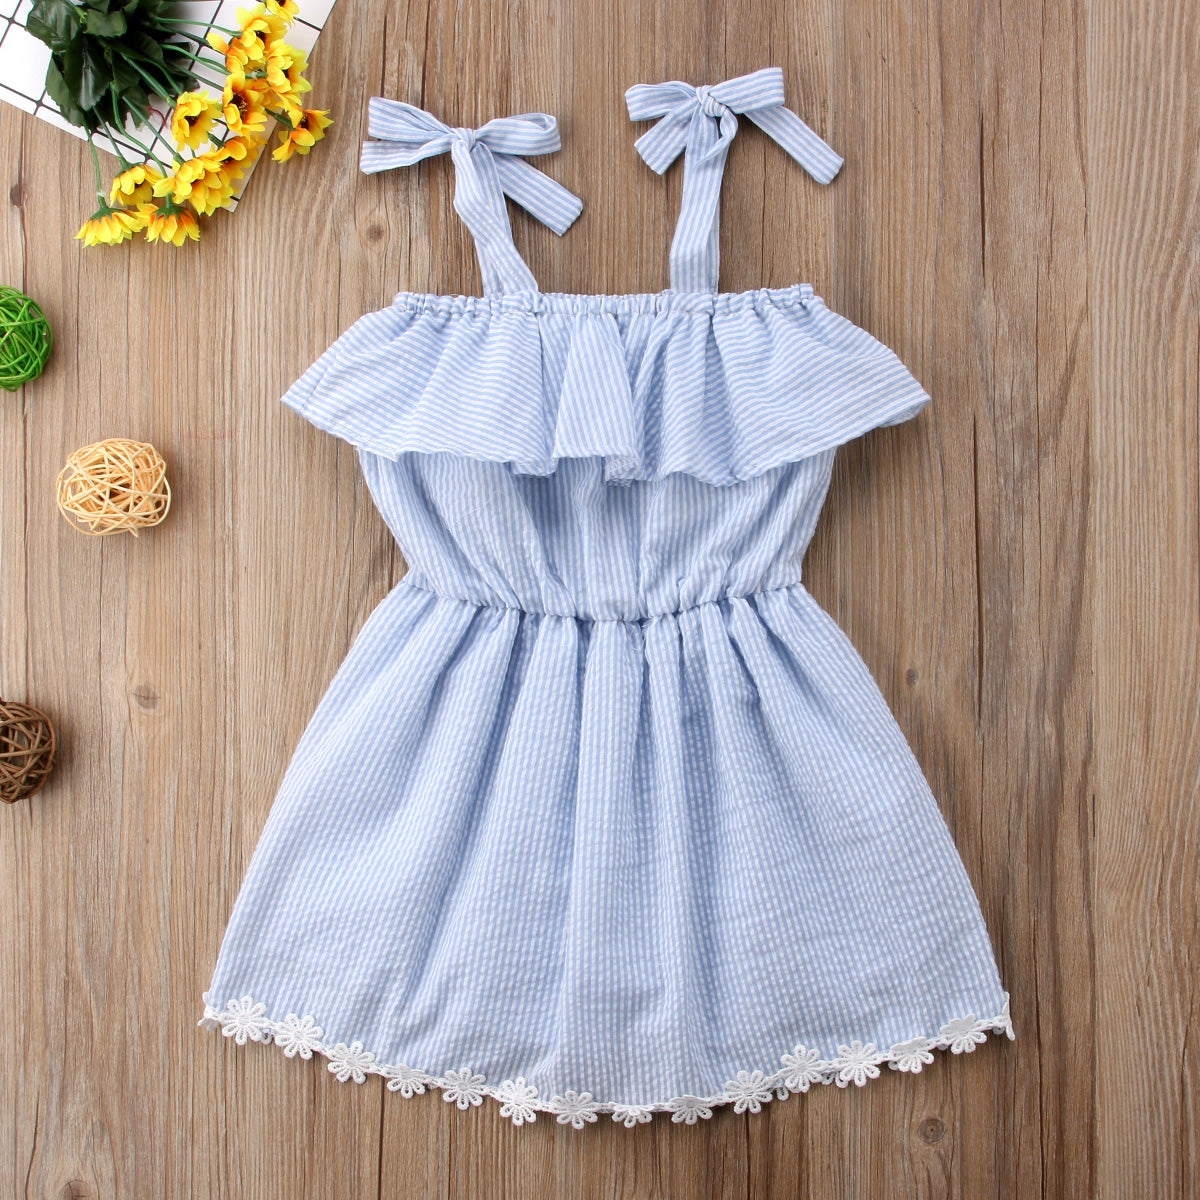 Cute Lace Flower Blue Striped Romper Sundress For Baby Girl